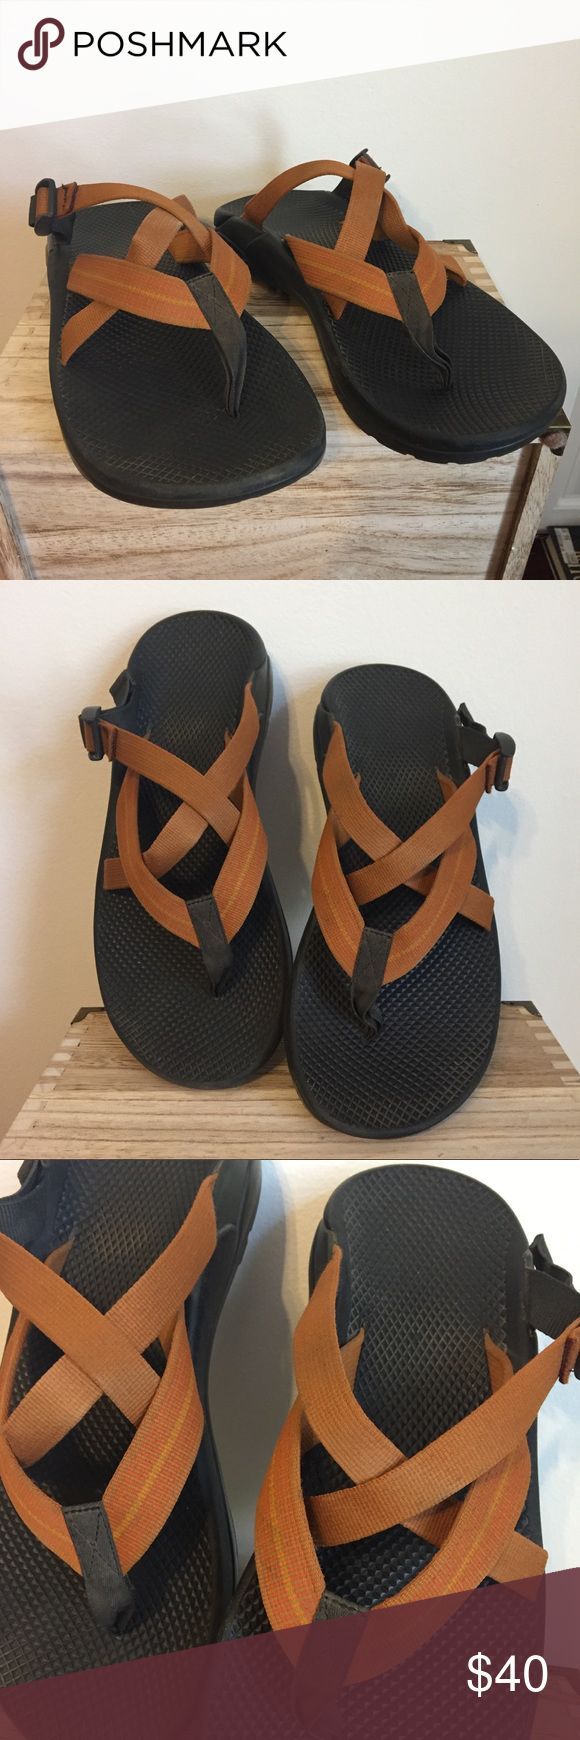 Men's Chacos flip-flops Chaco flip-flops, orange straps, black soles. These have been worn a lot but they're still in good condition. No tears in the straps and soles are still good. Chaco Shoes Sandals & Flip-Flops